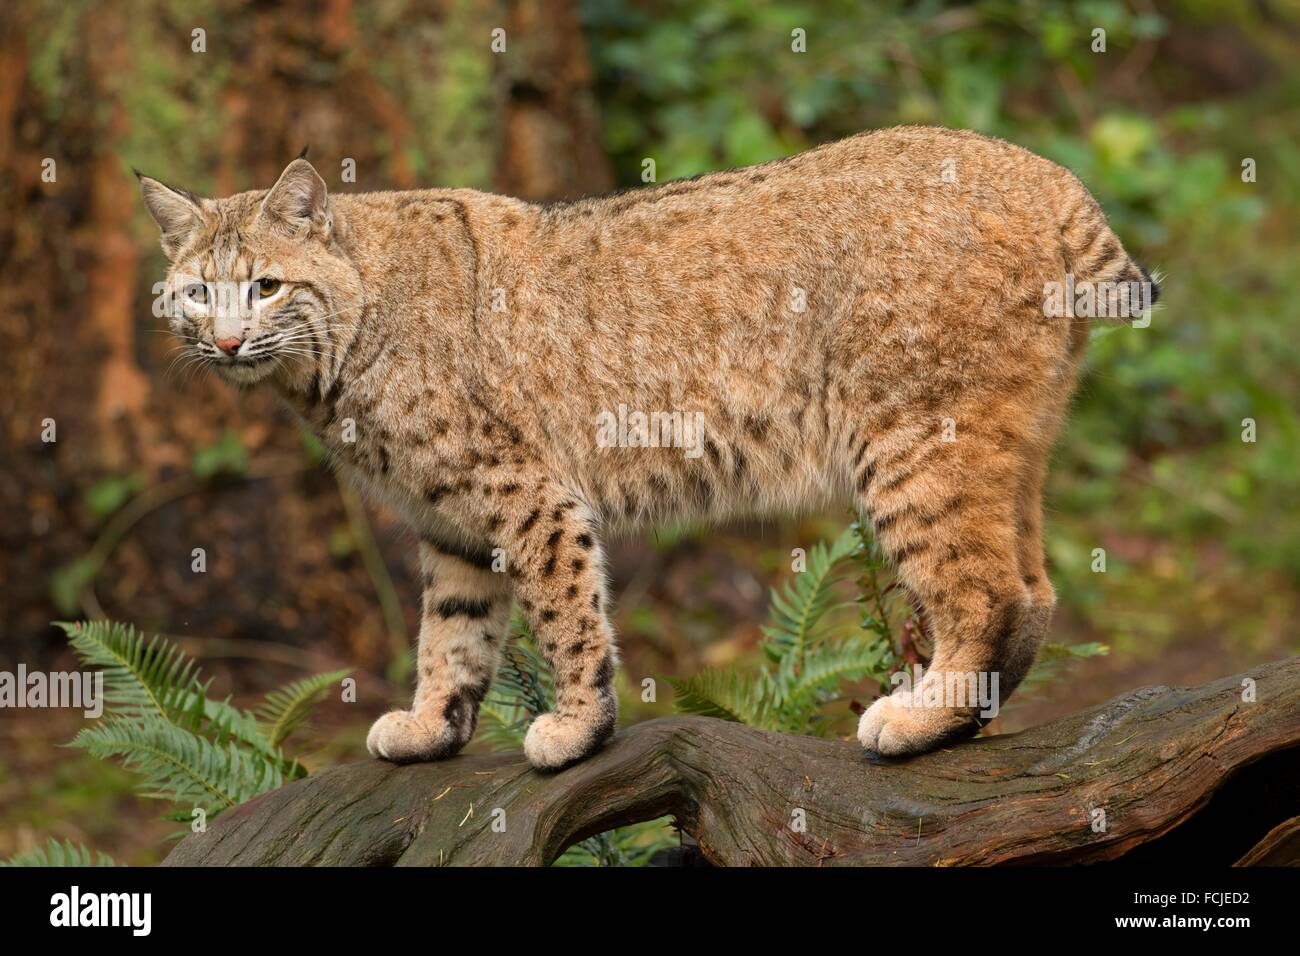 Lynx, Northwest Trek Wildlife Park, Washington. - Stock Image